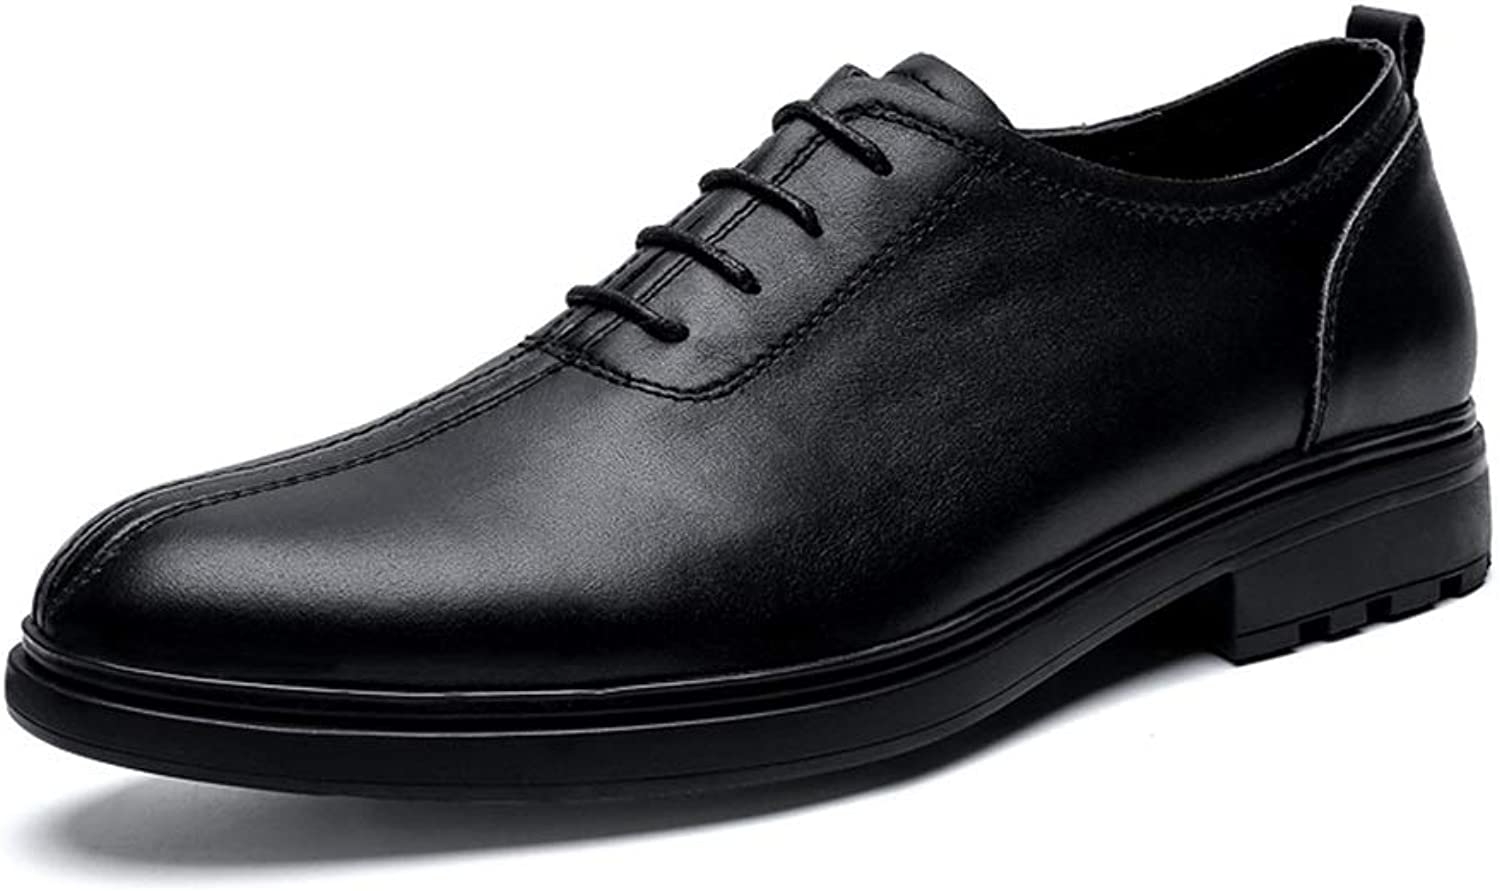 Round Toe Oxford shoes For Men Formal shoes Lace Up Style OX Leather Classic Casual Comfortable British Style 2019 Mens shoes Lace-up (color   Black, Size   8.5 UK)